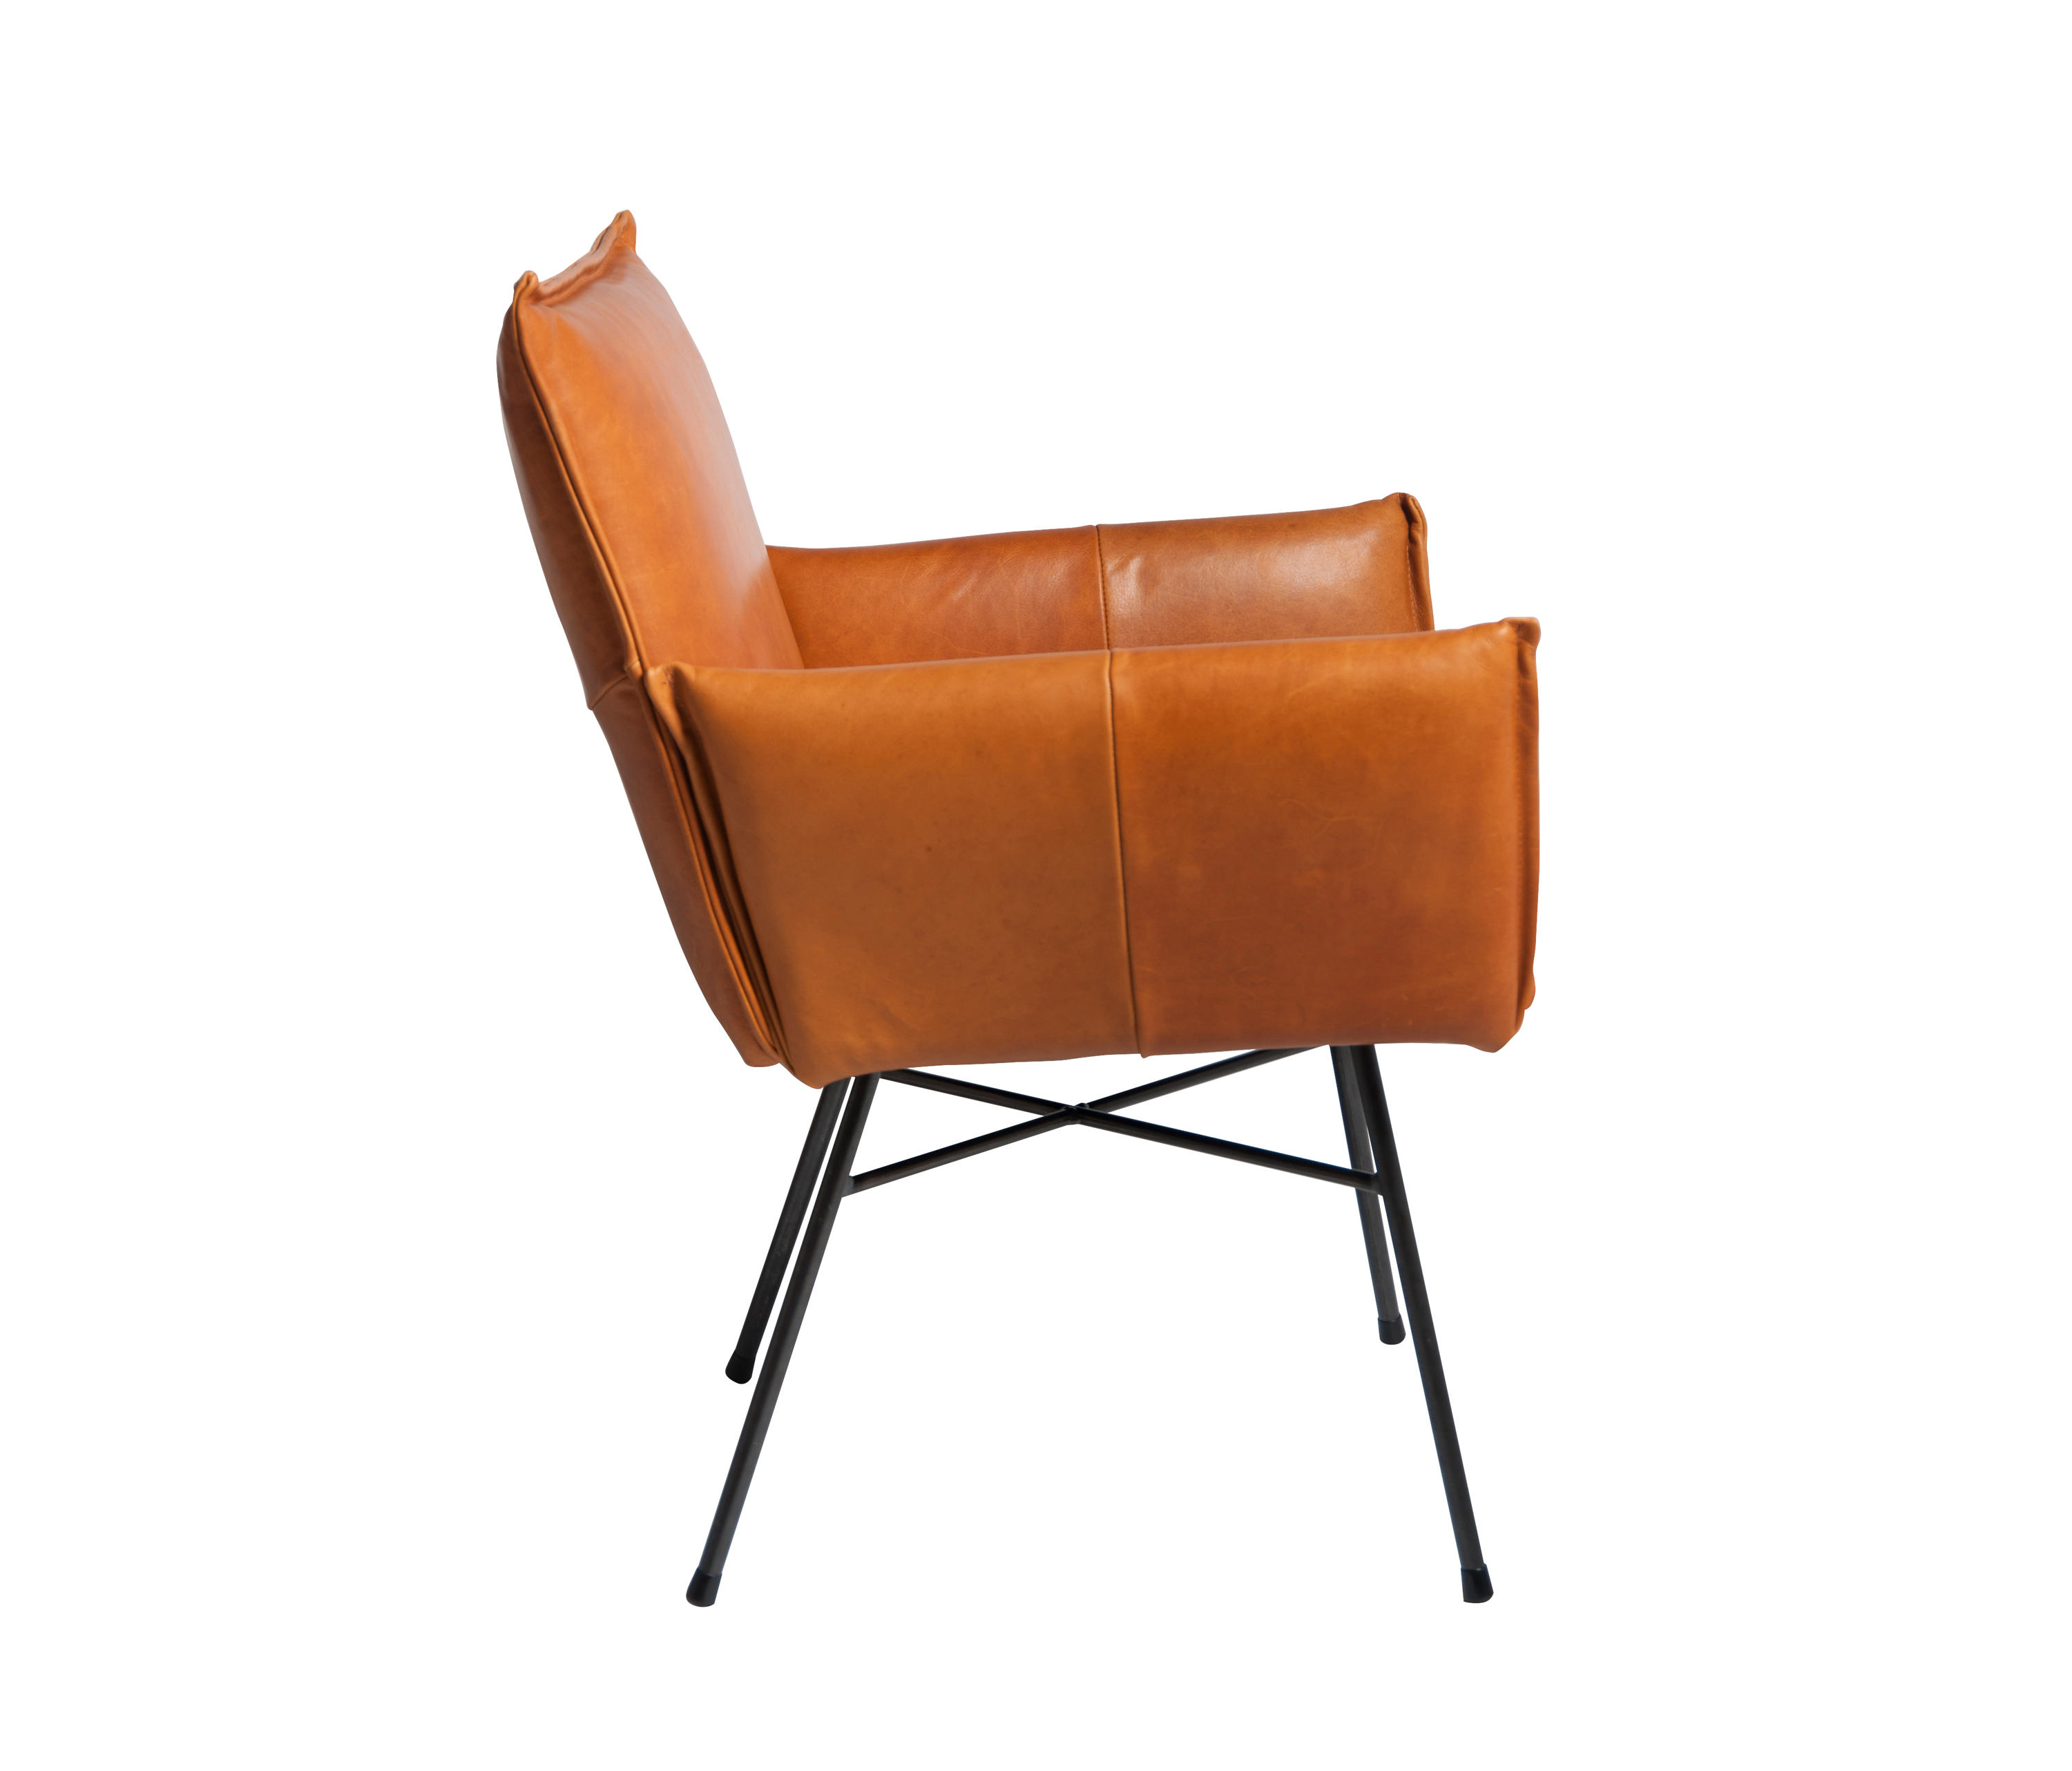 SANNE DINING CHAIR WITH ARMS Restaurant chairs from Jess Design